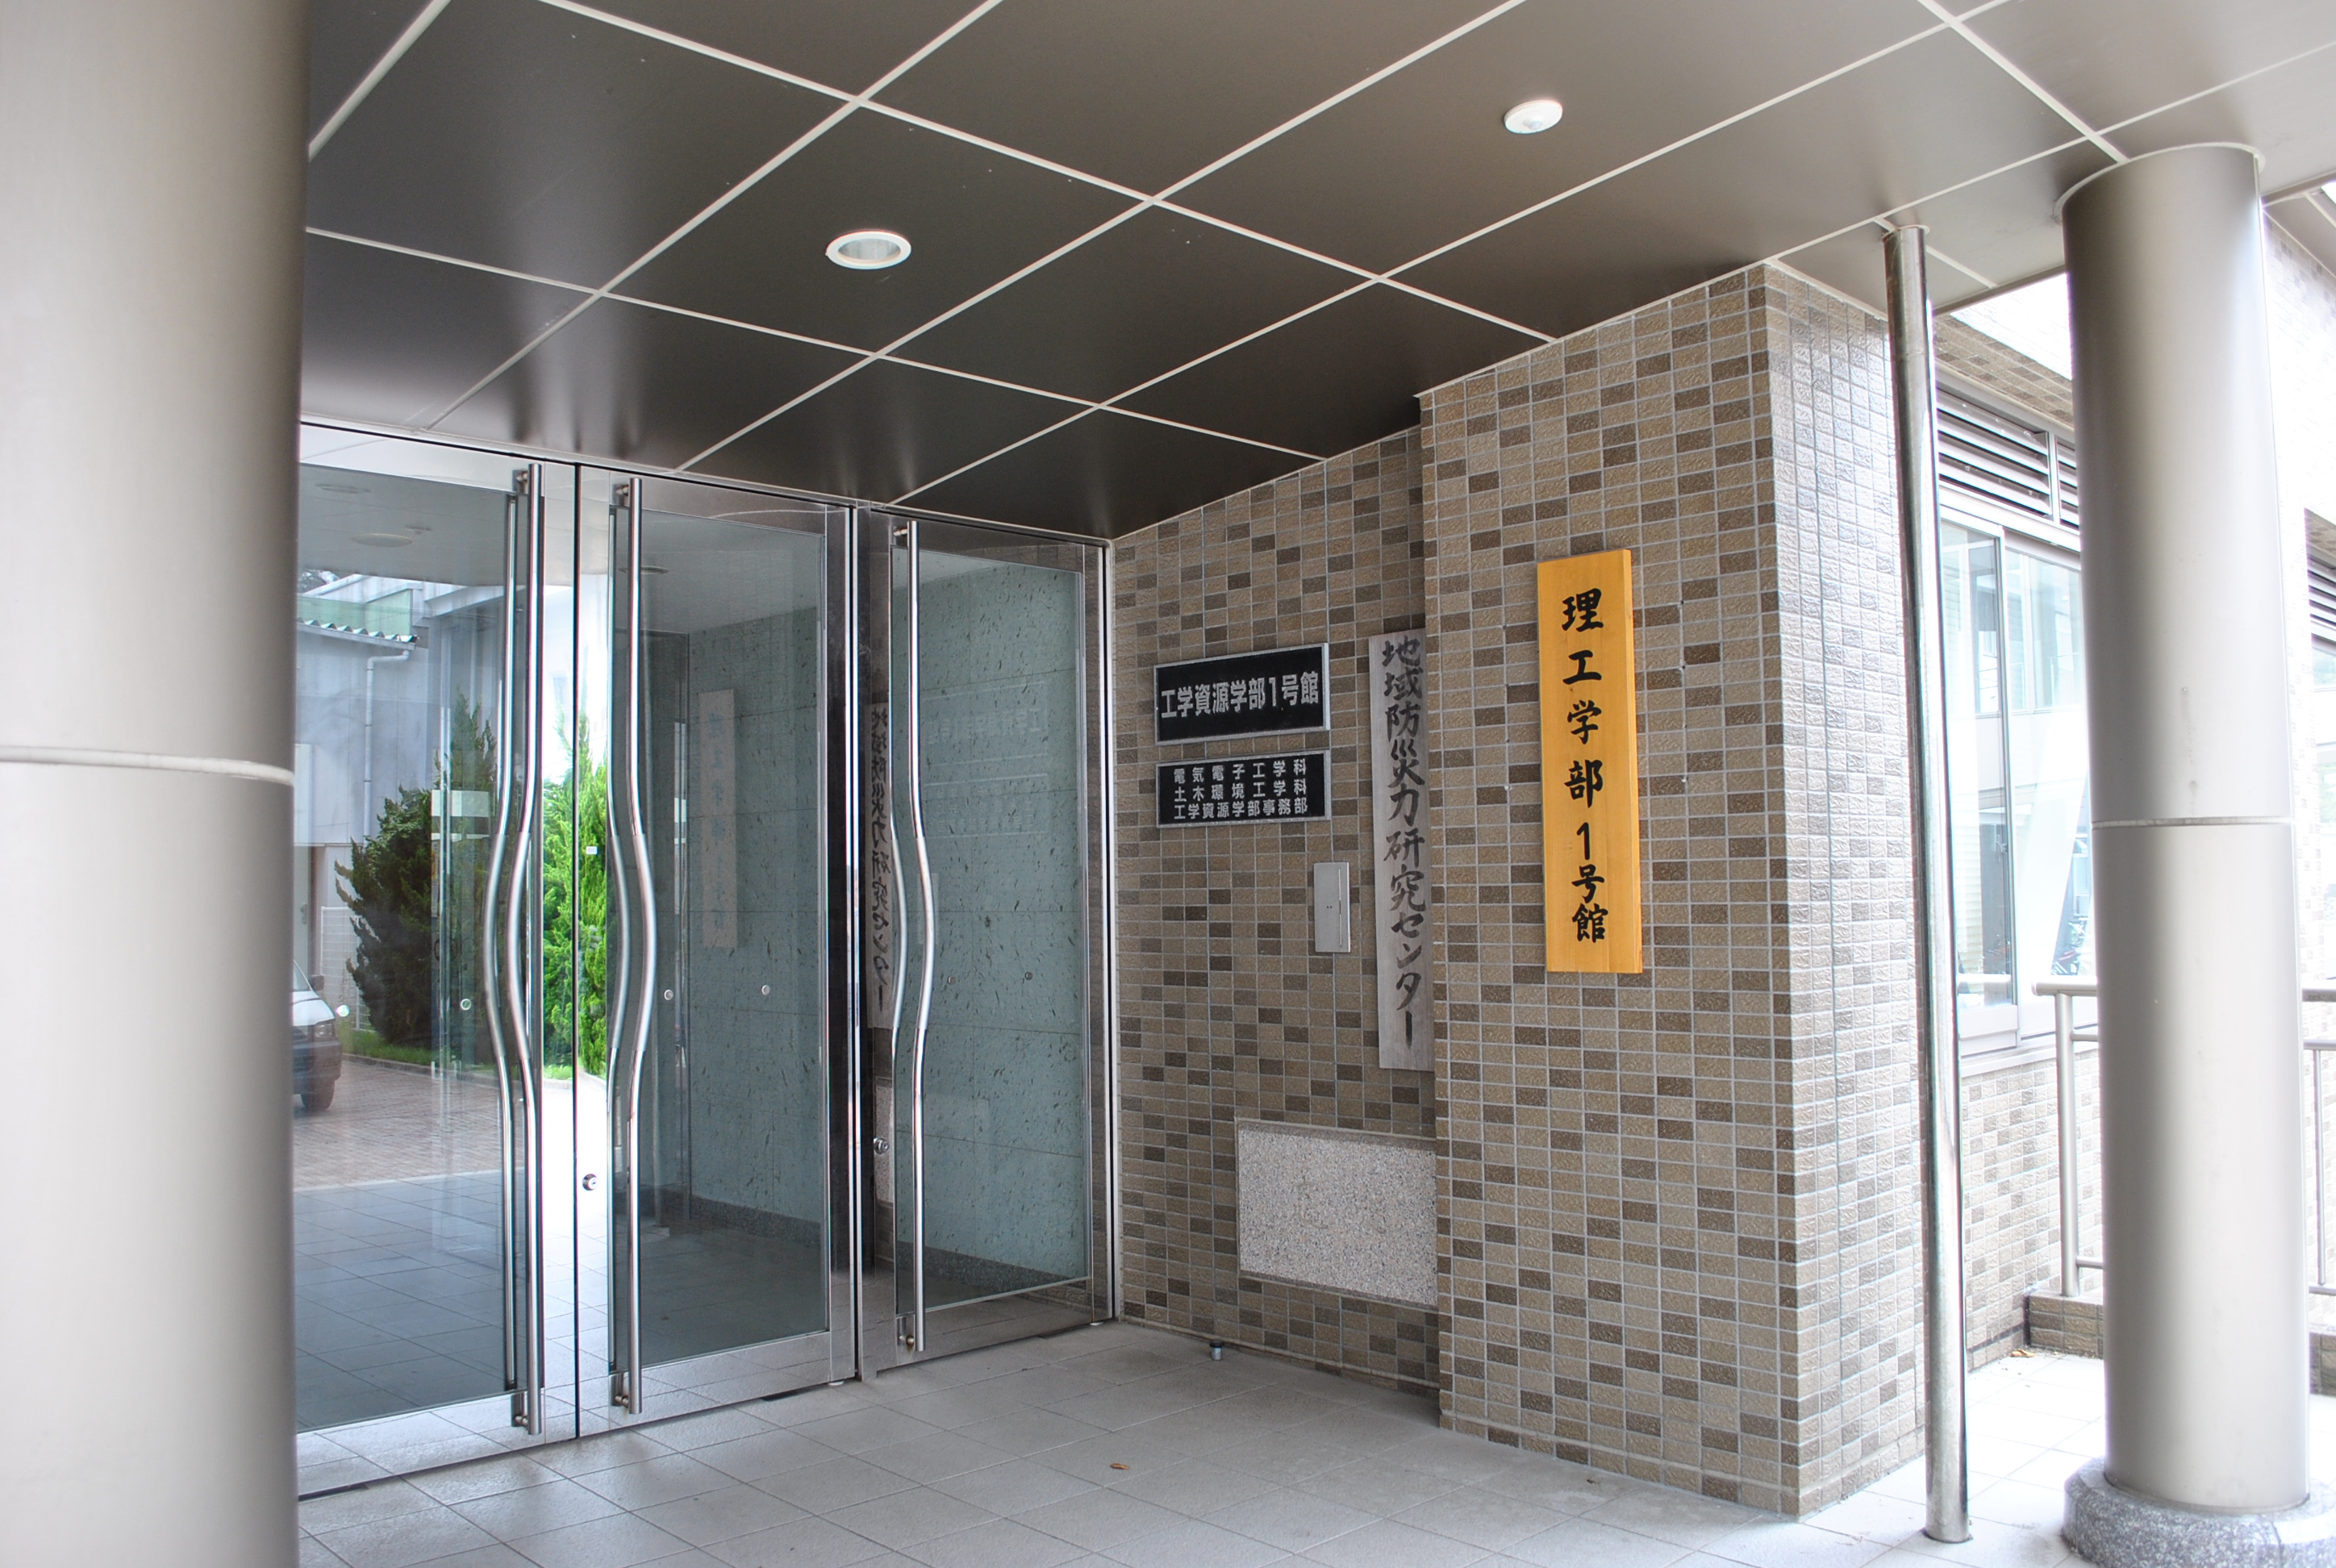 Research Center for Potential Development of Disaster Prevention